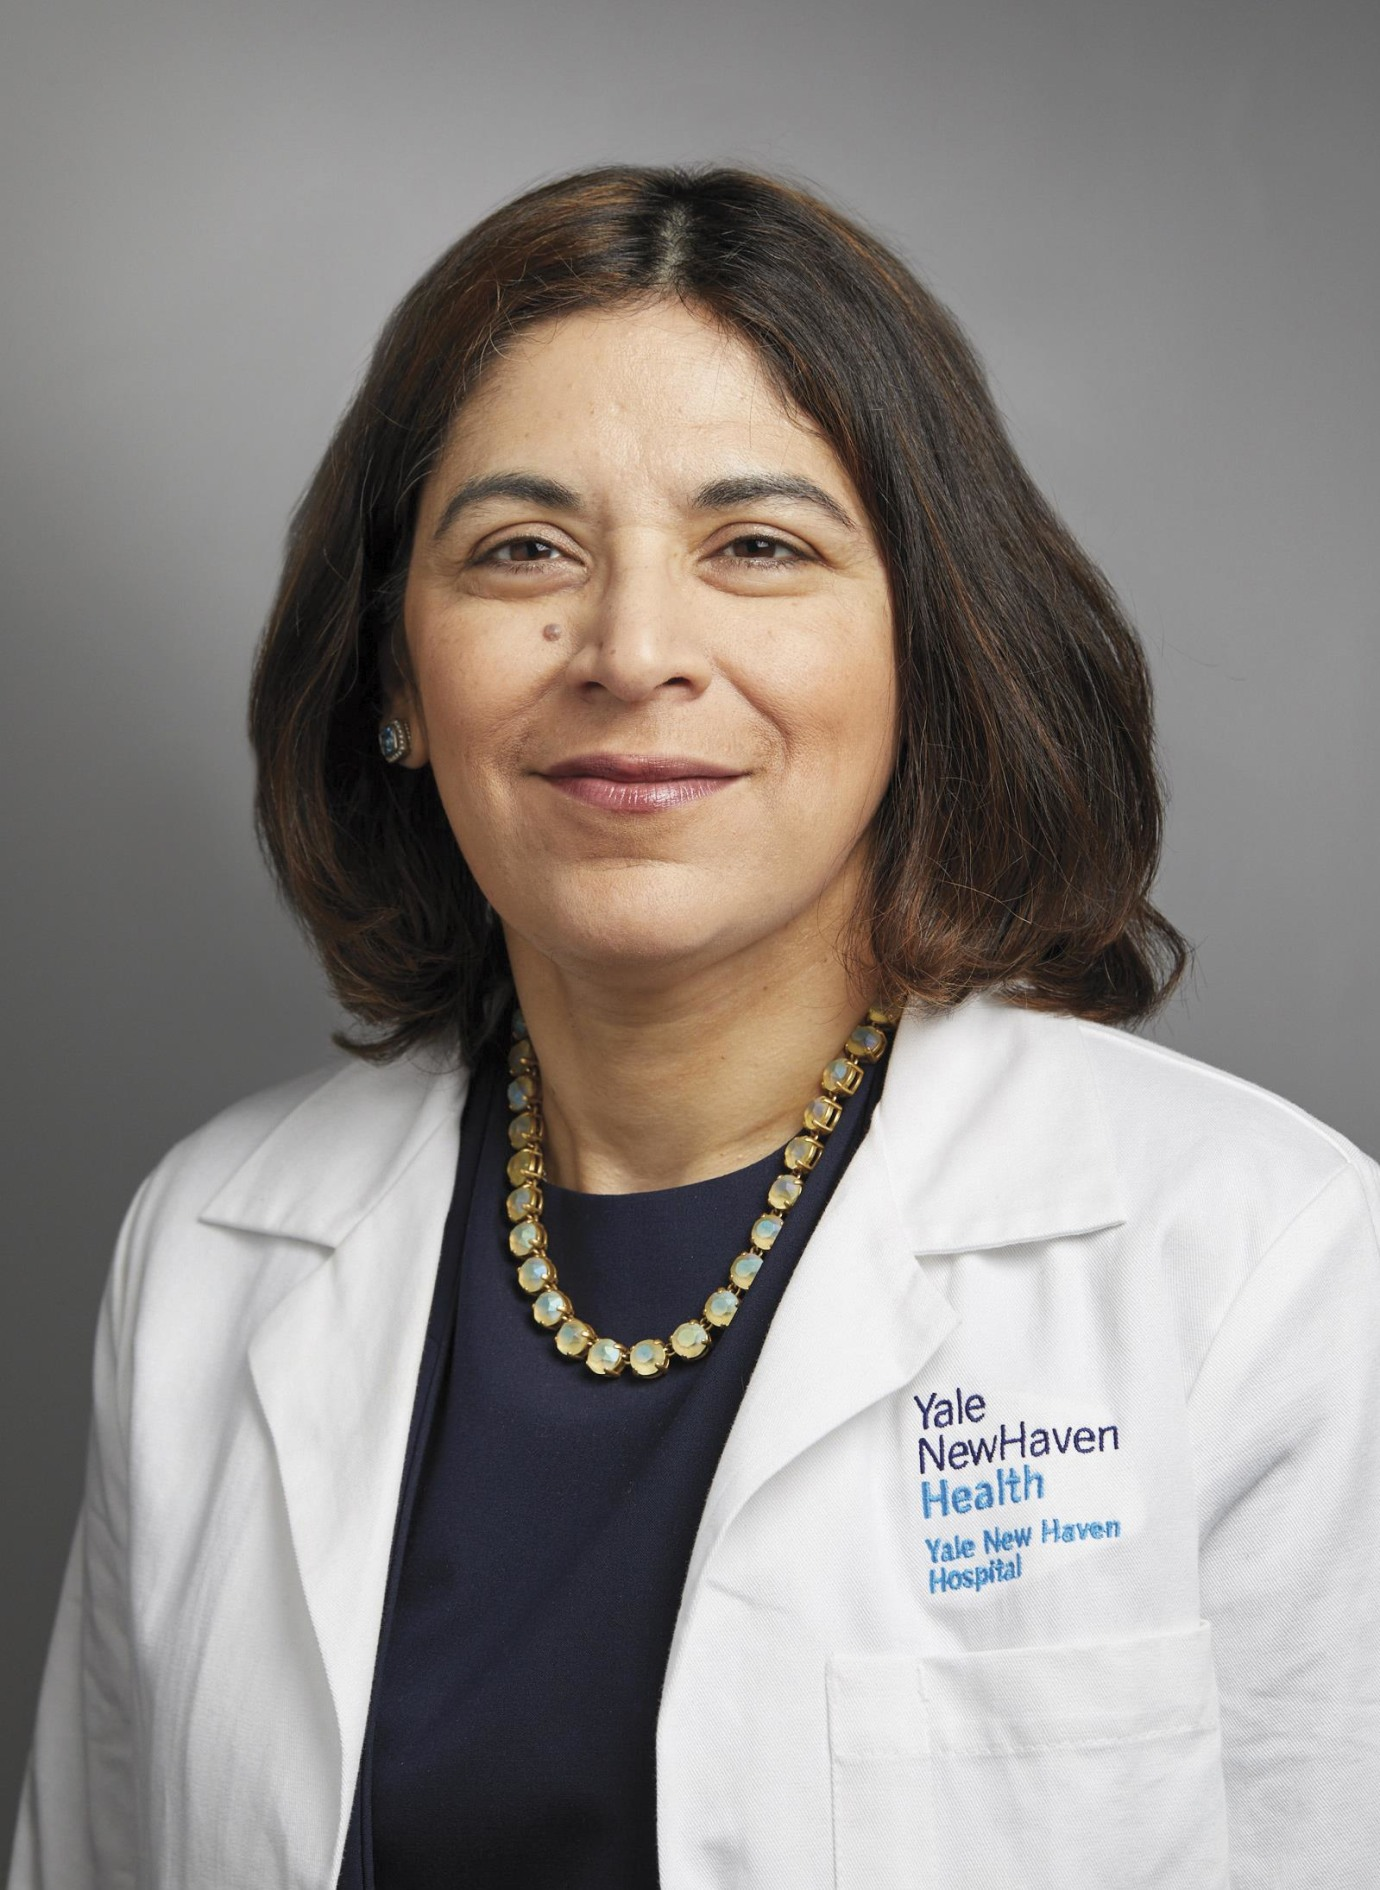 Nita Ahuja is fully prepared to lead Yale's department of surgery as their first woman chair.